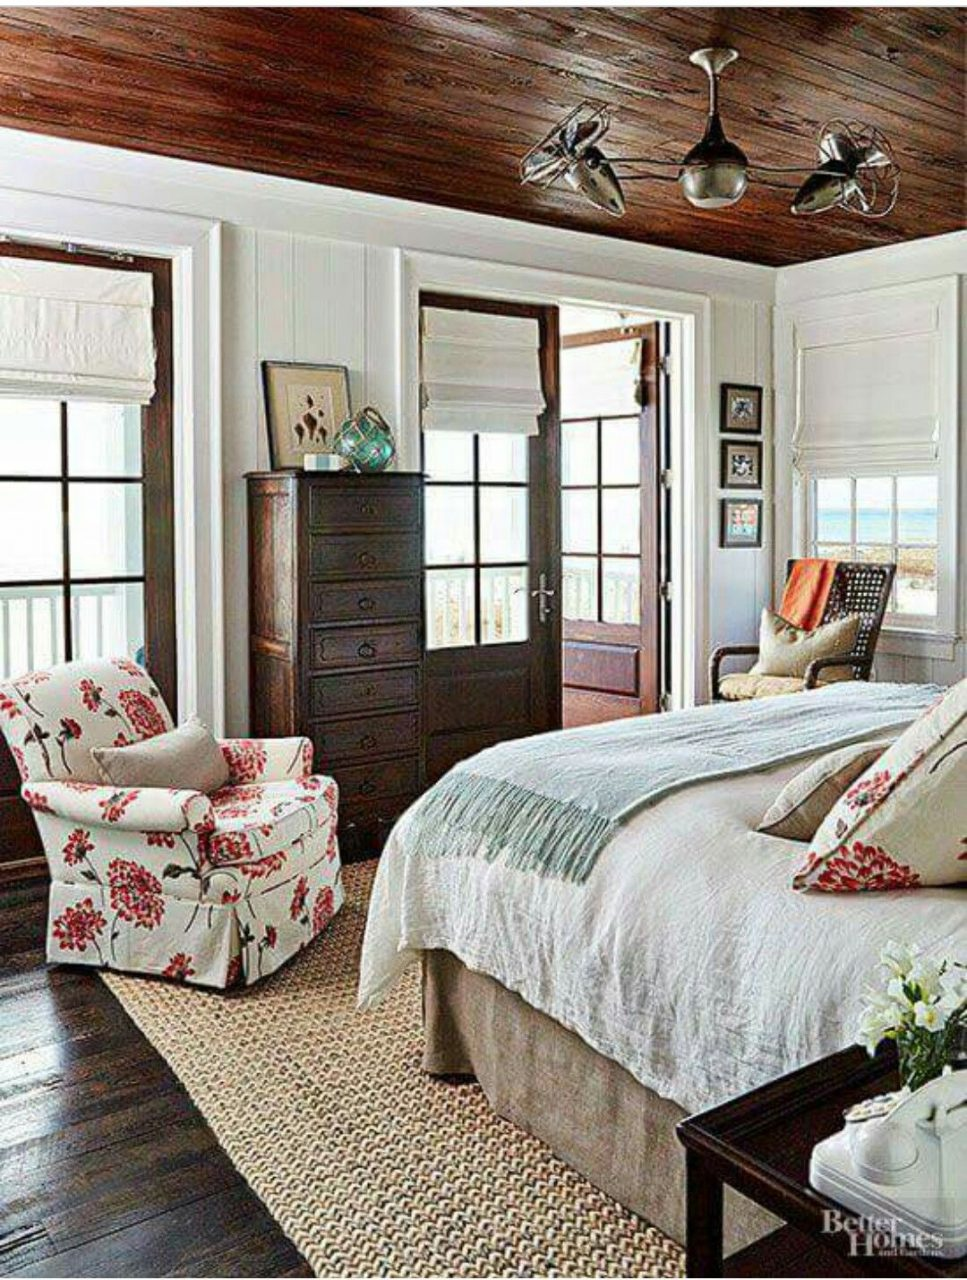 Facebook Decorating Ideas Pinterest Bedroom Cottage Style